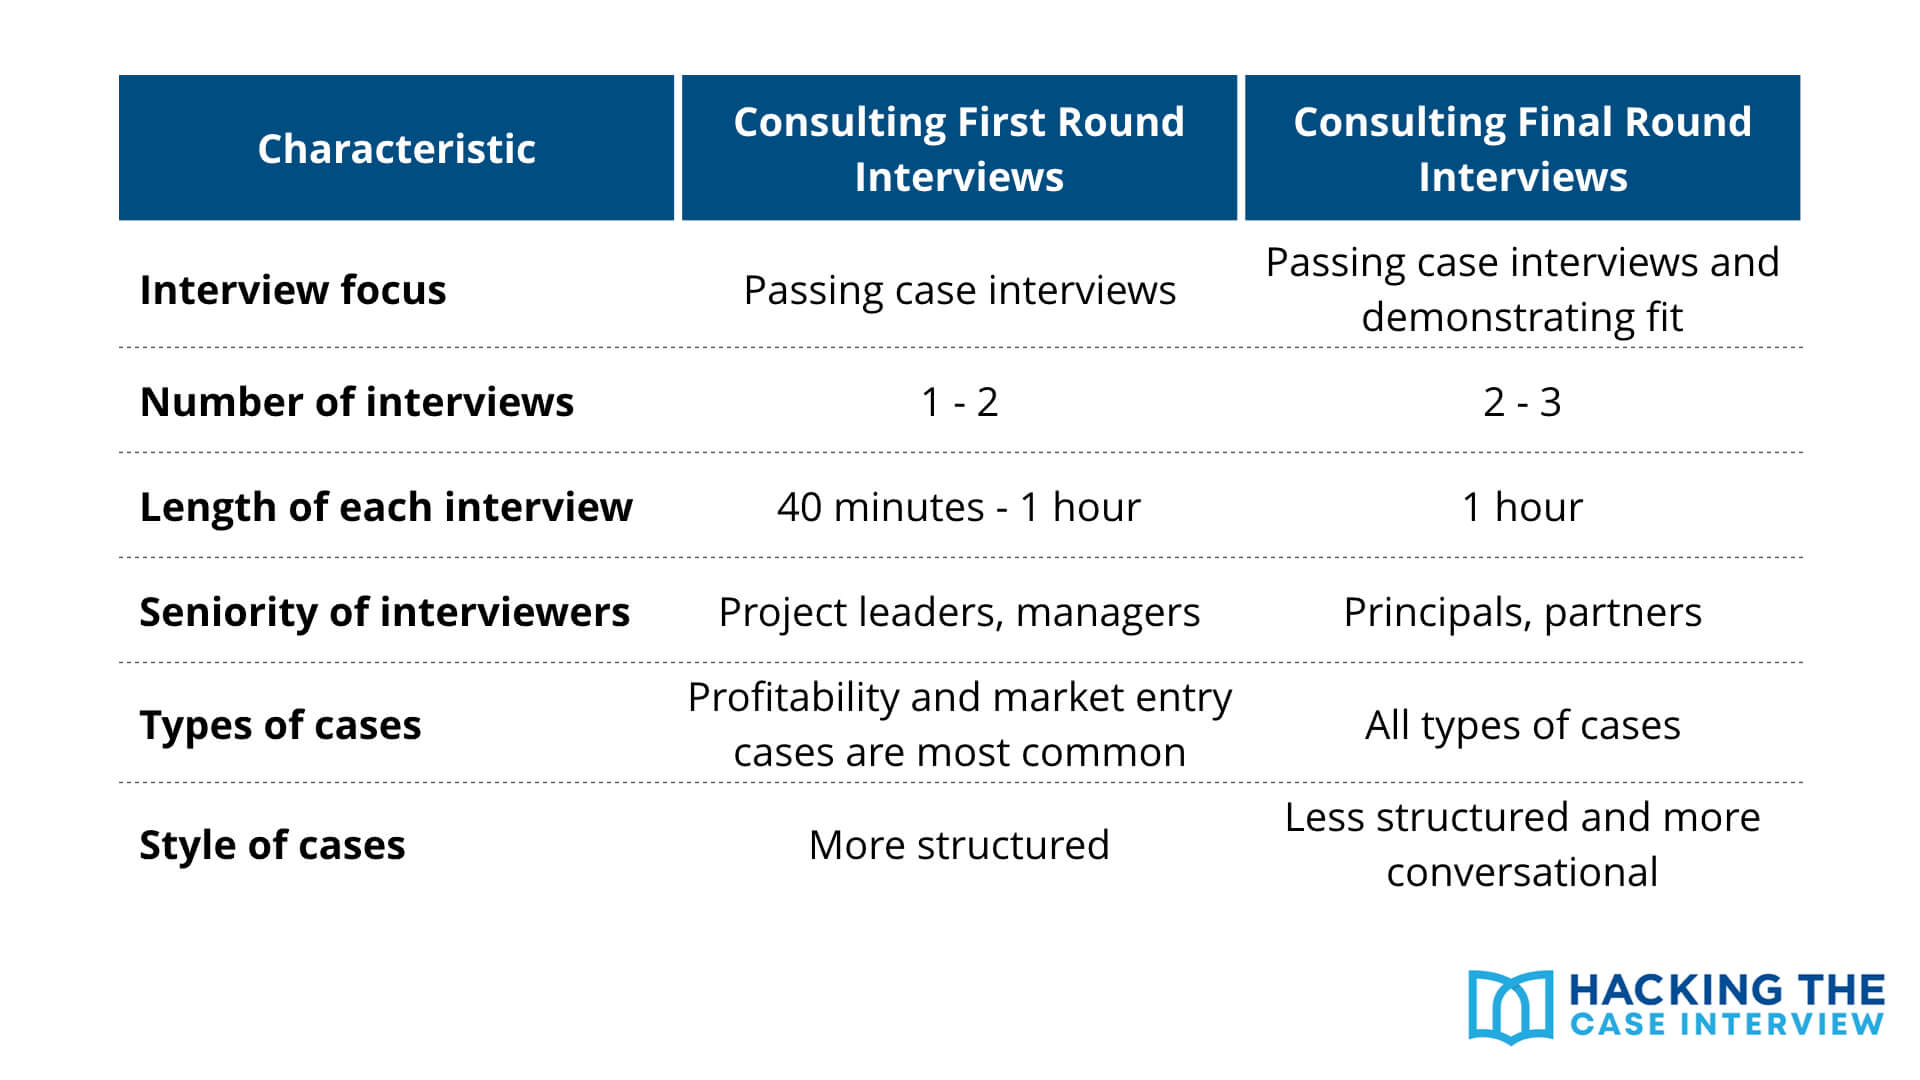 Consulting First Round vs. Final Round Interviews